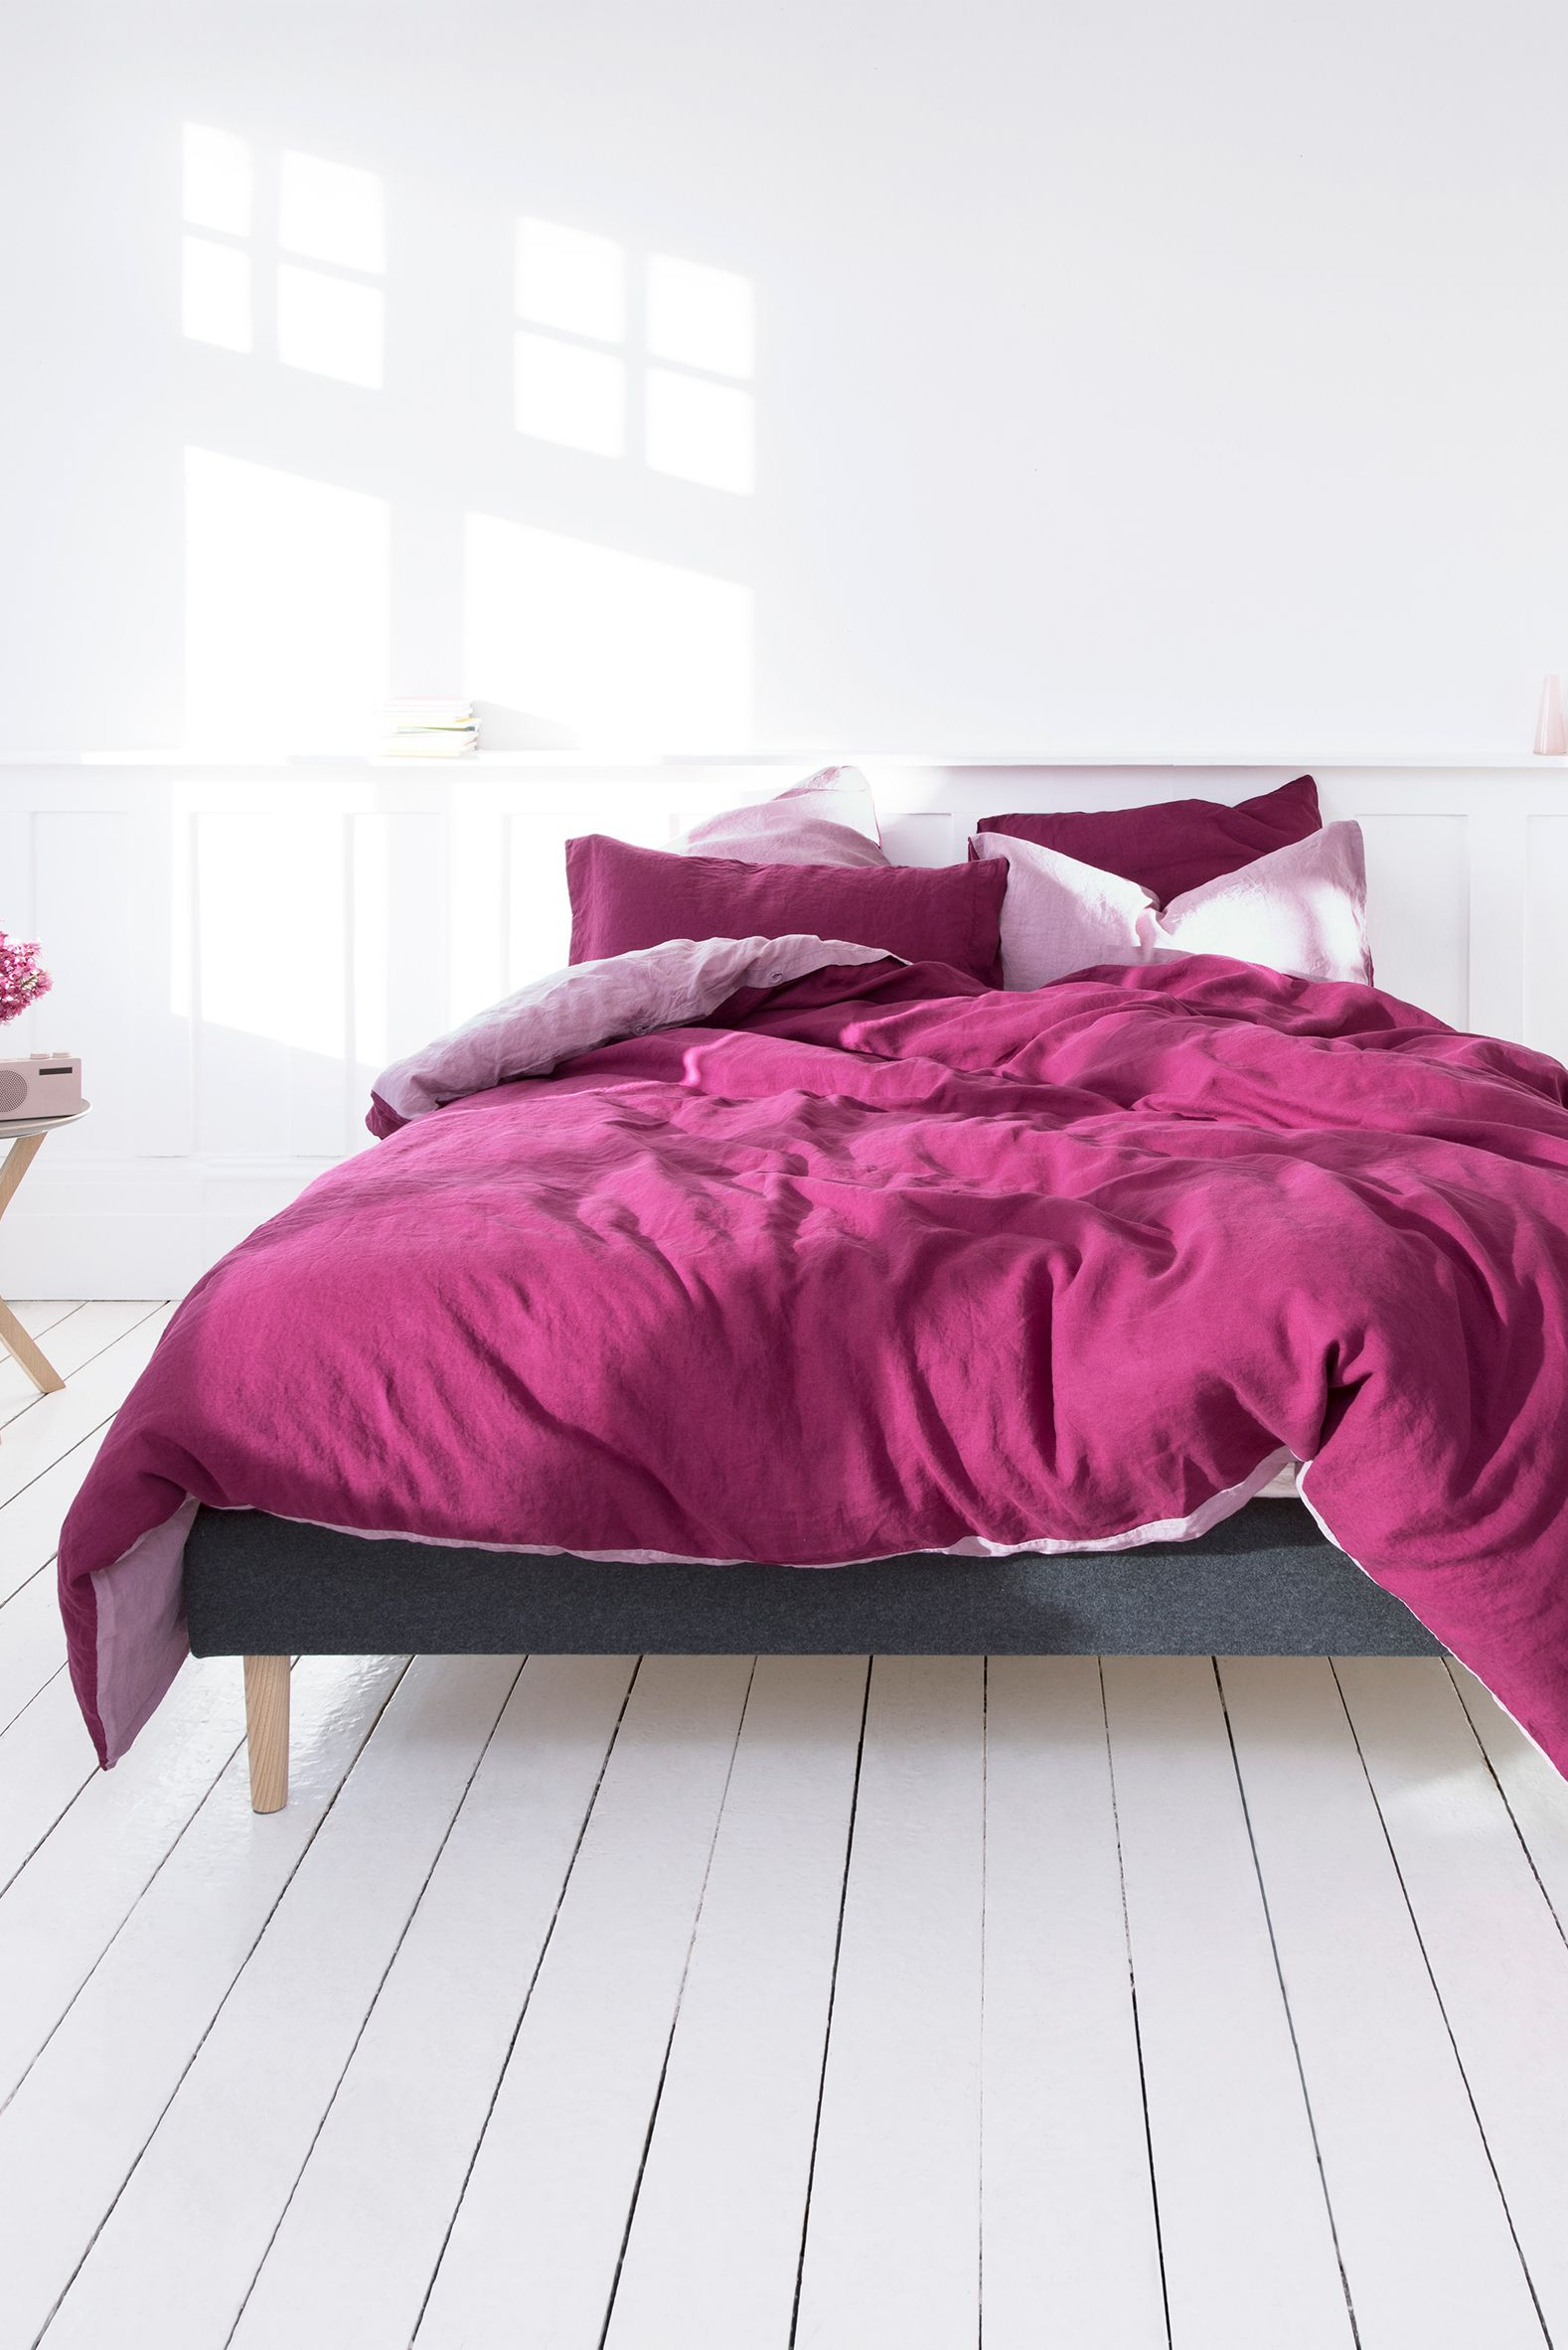 Blush And Berry Coloured Bed Linen By Eve Sleep Made From Flax Stonewashed